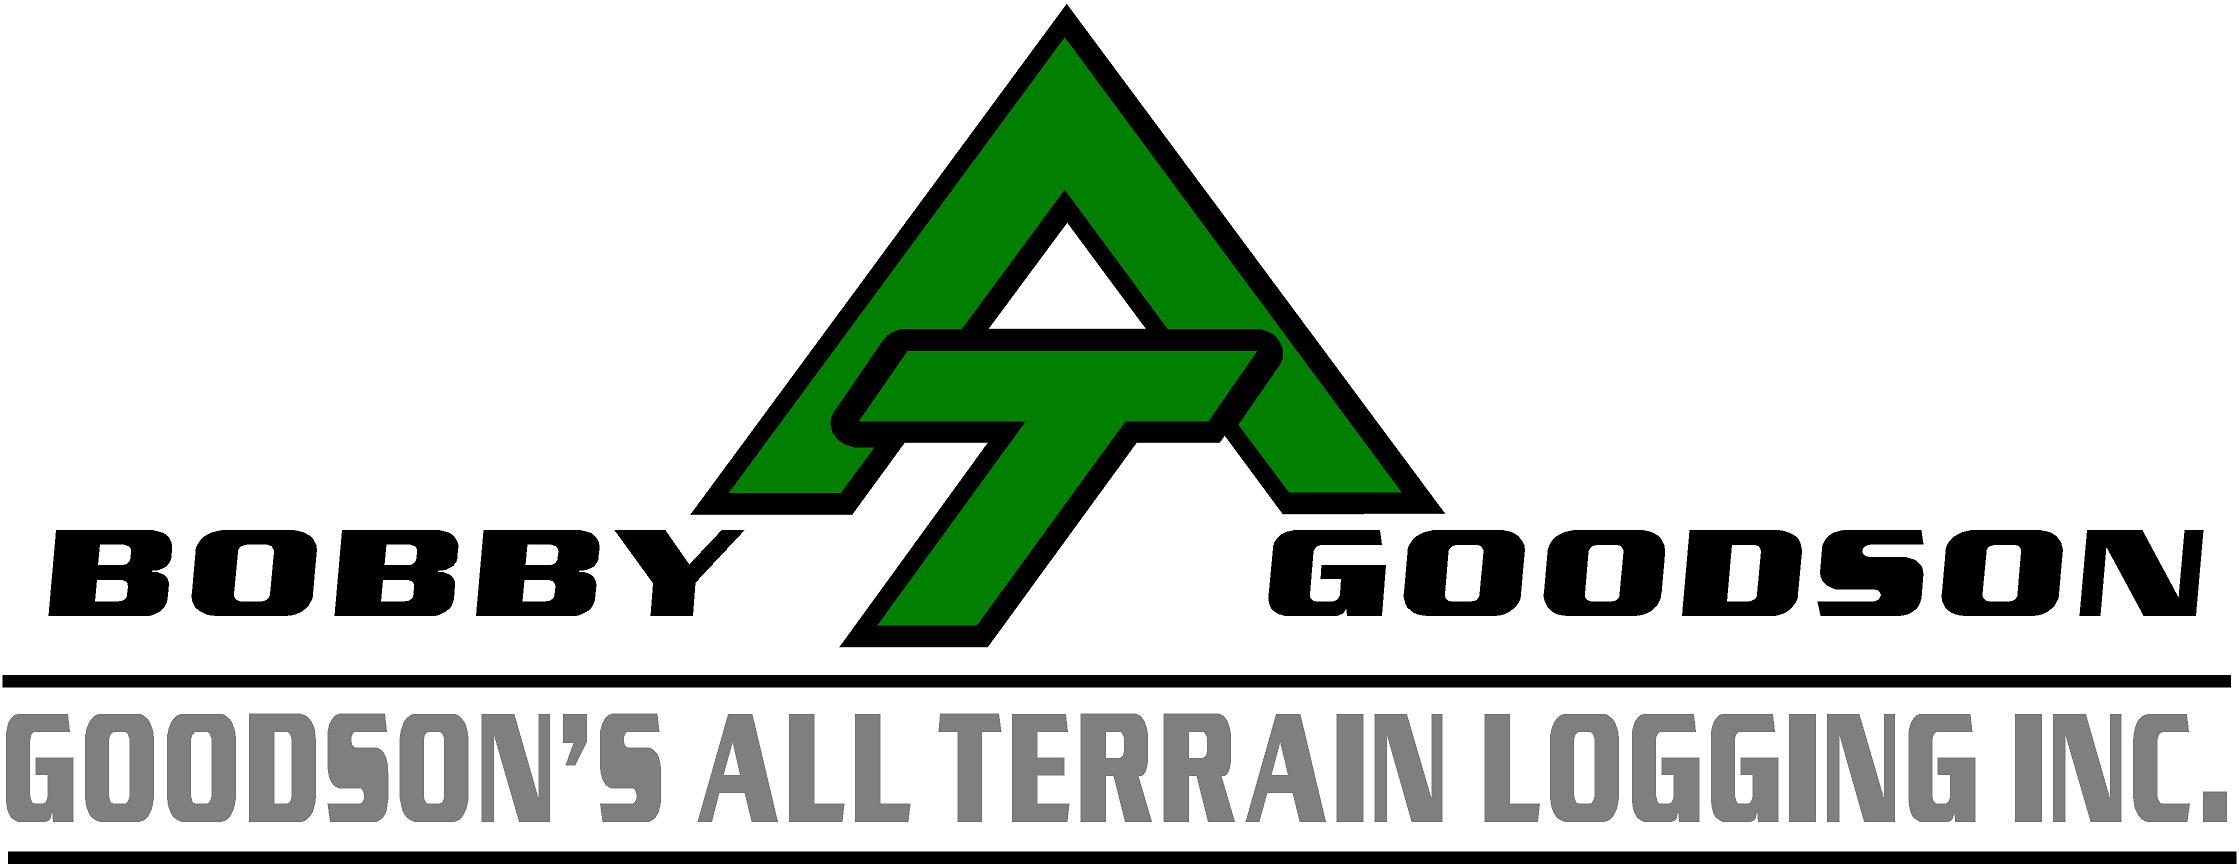 Goodson's All Terrain Logging, Inc.